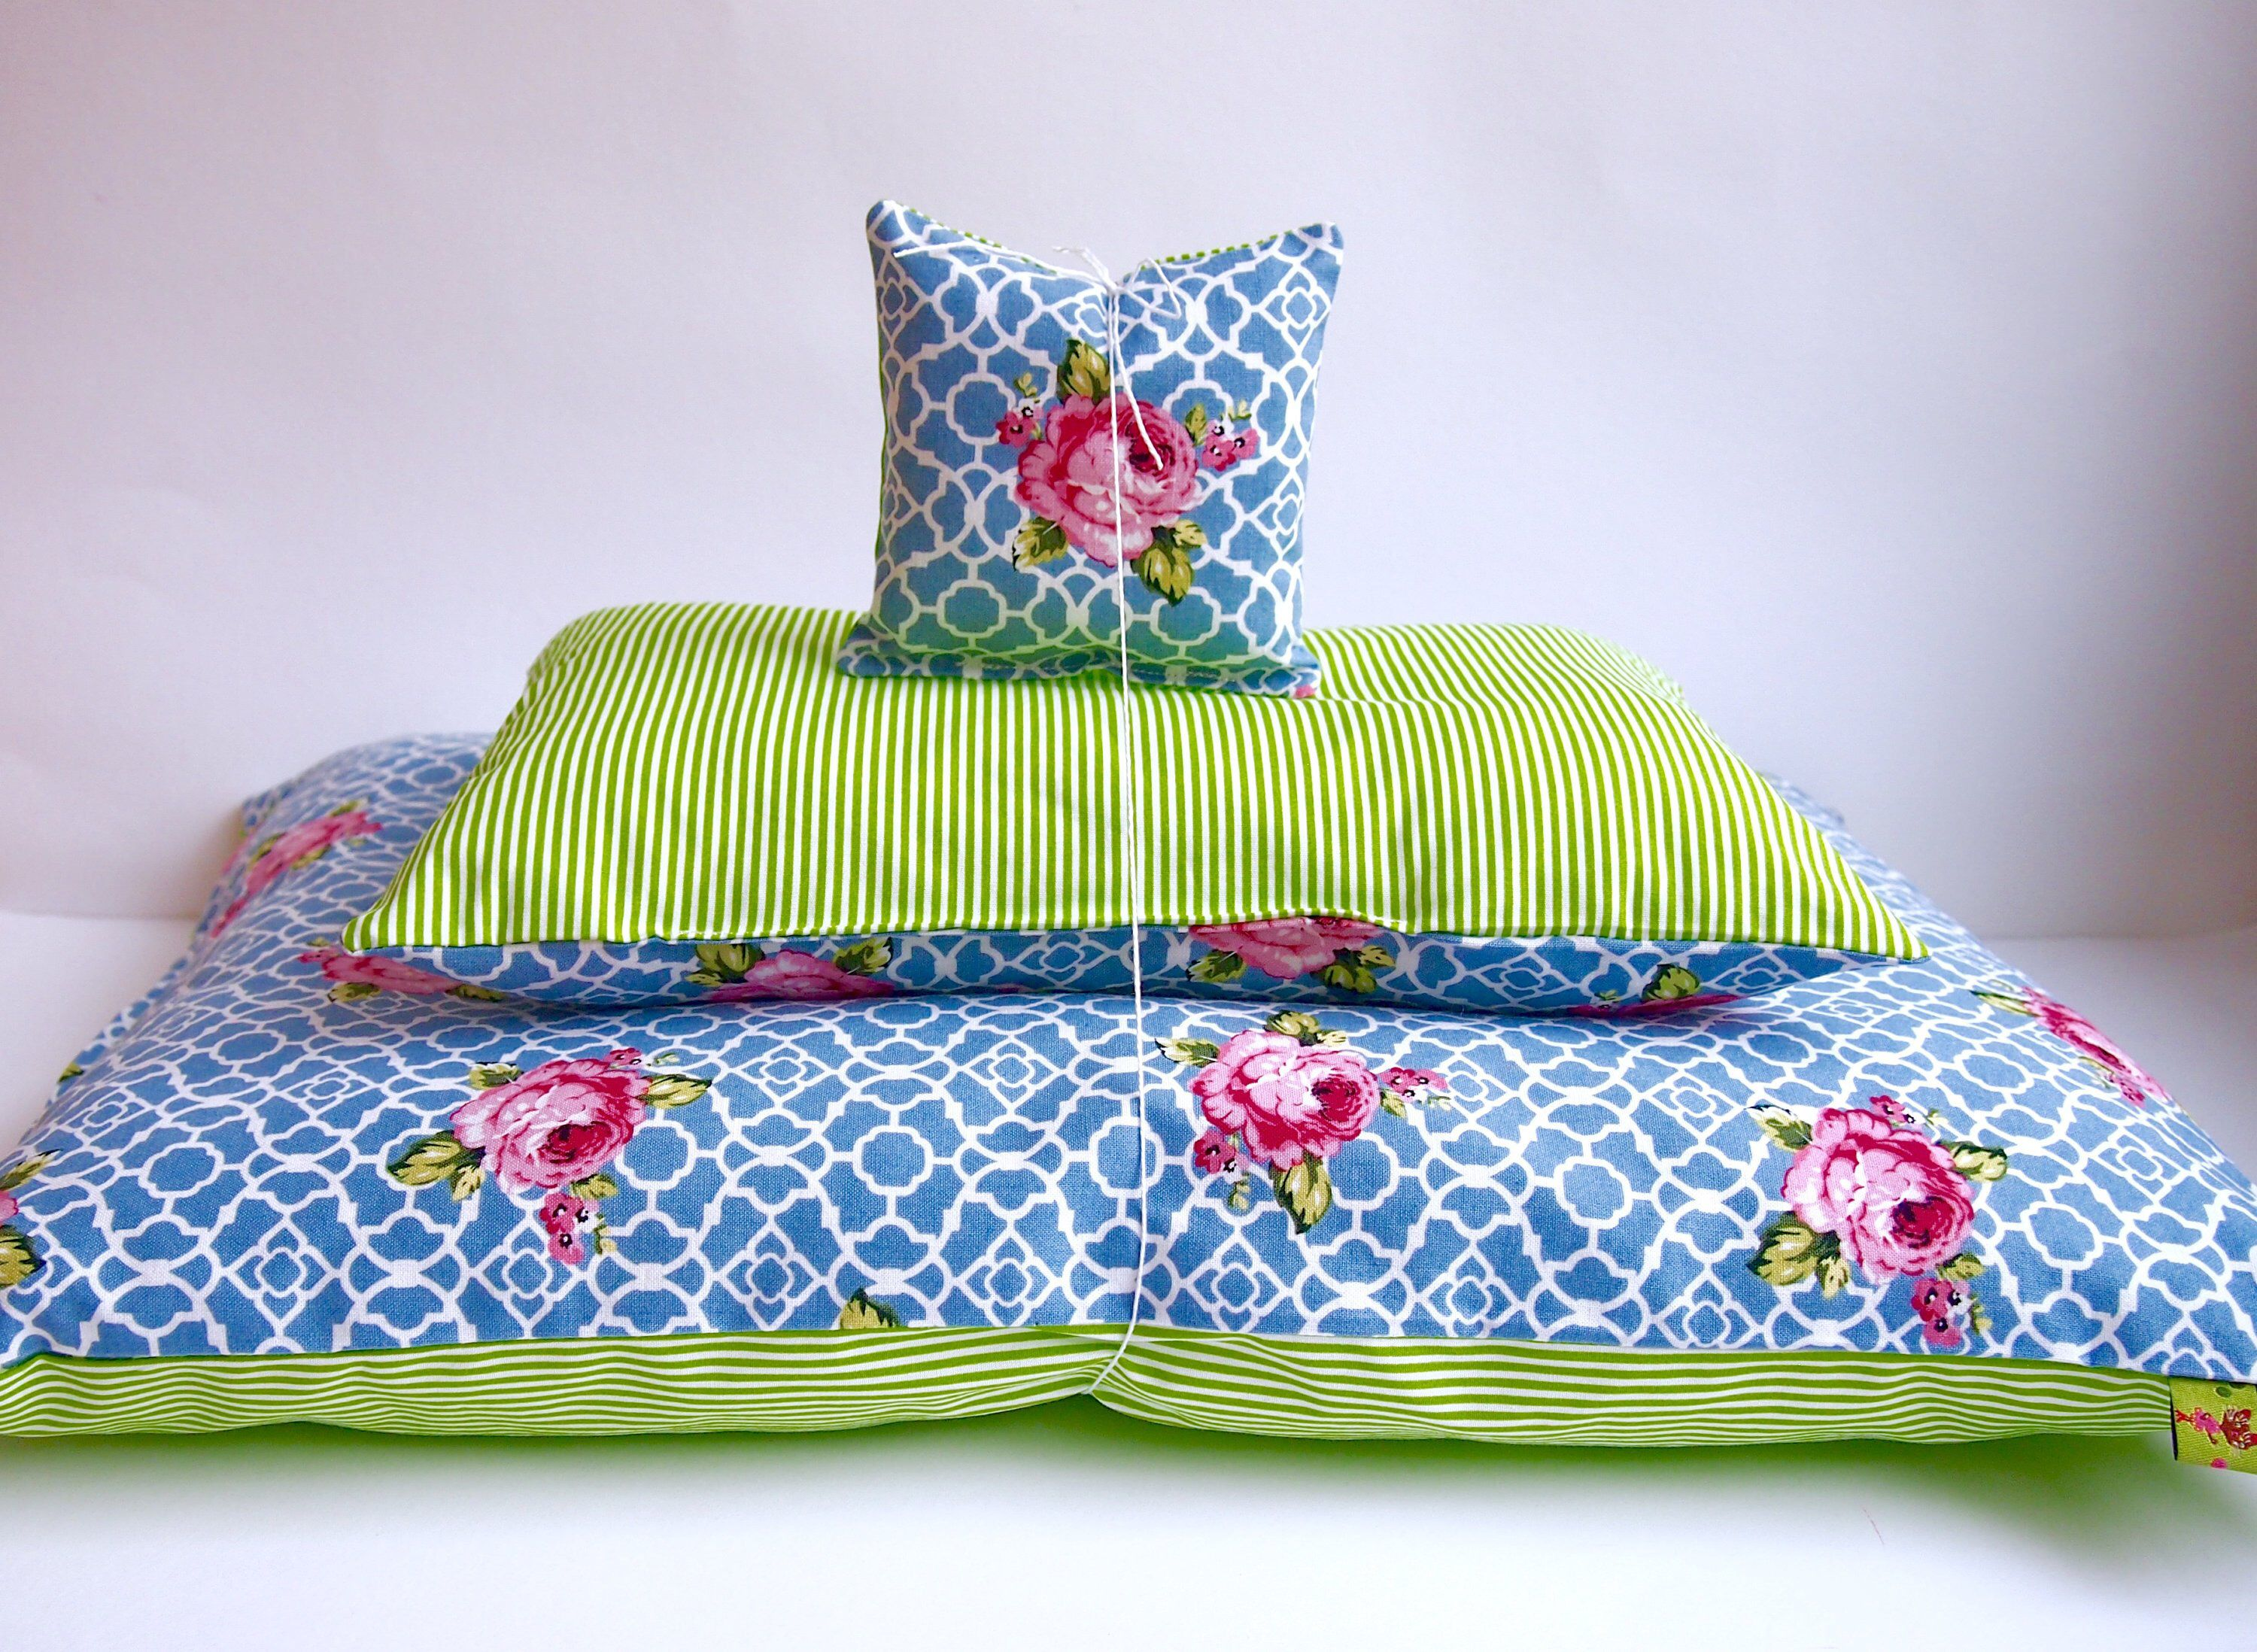 Doll S Bedding Oda Doll Bed Linen Pillow For Doll S Bed